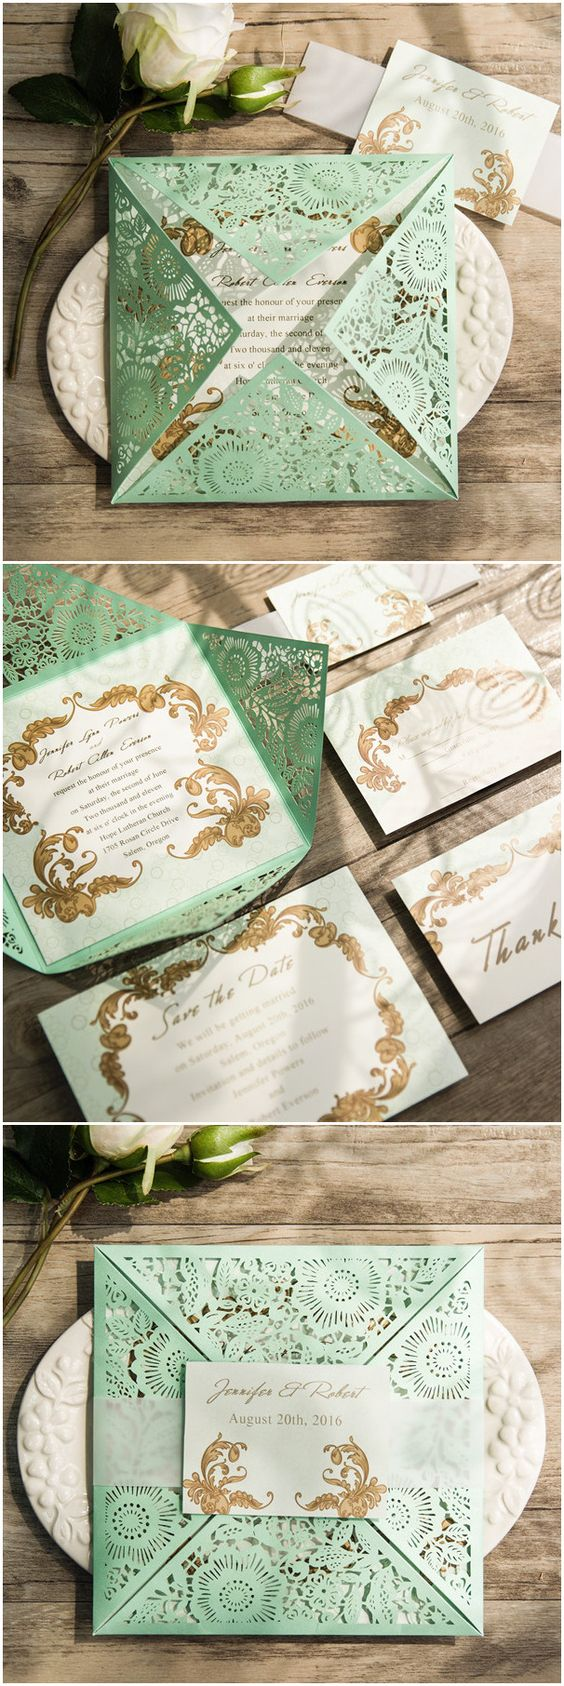 Vintage Mint Green Laser Cut Wedding Invitations With Free Rsvp Cards